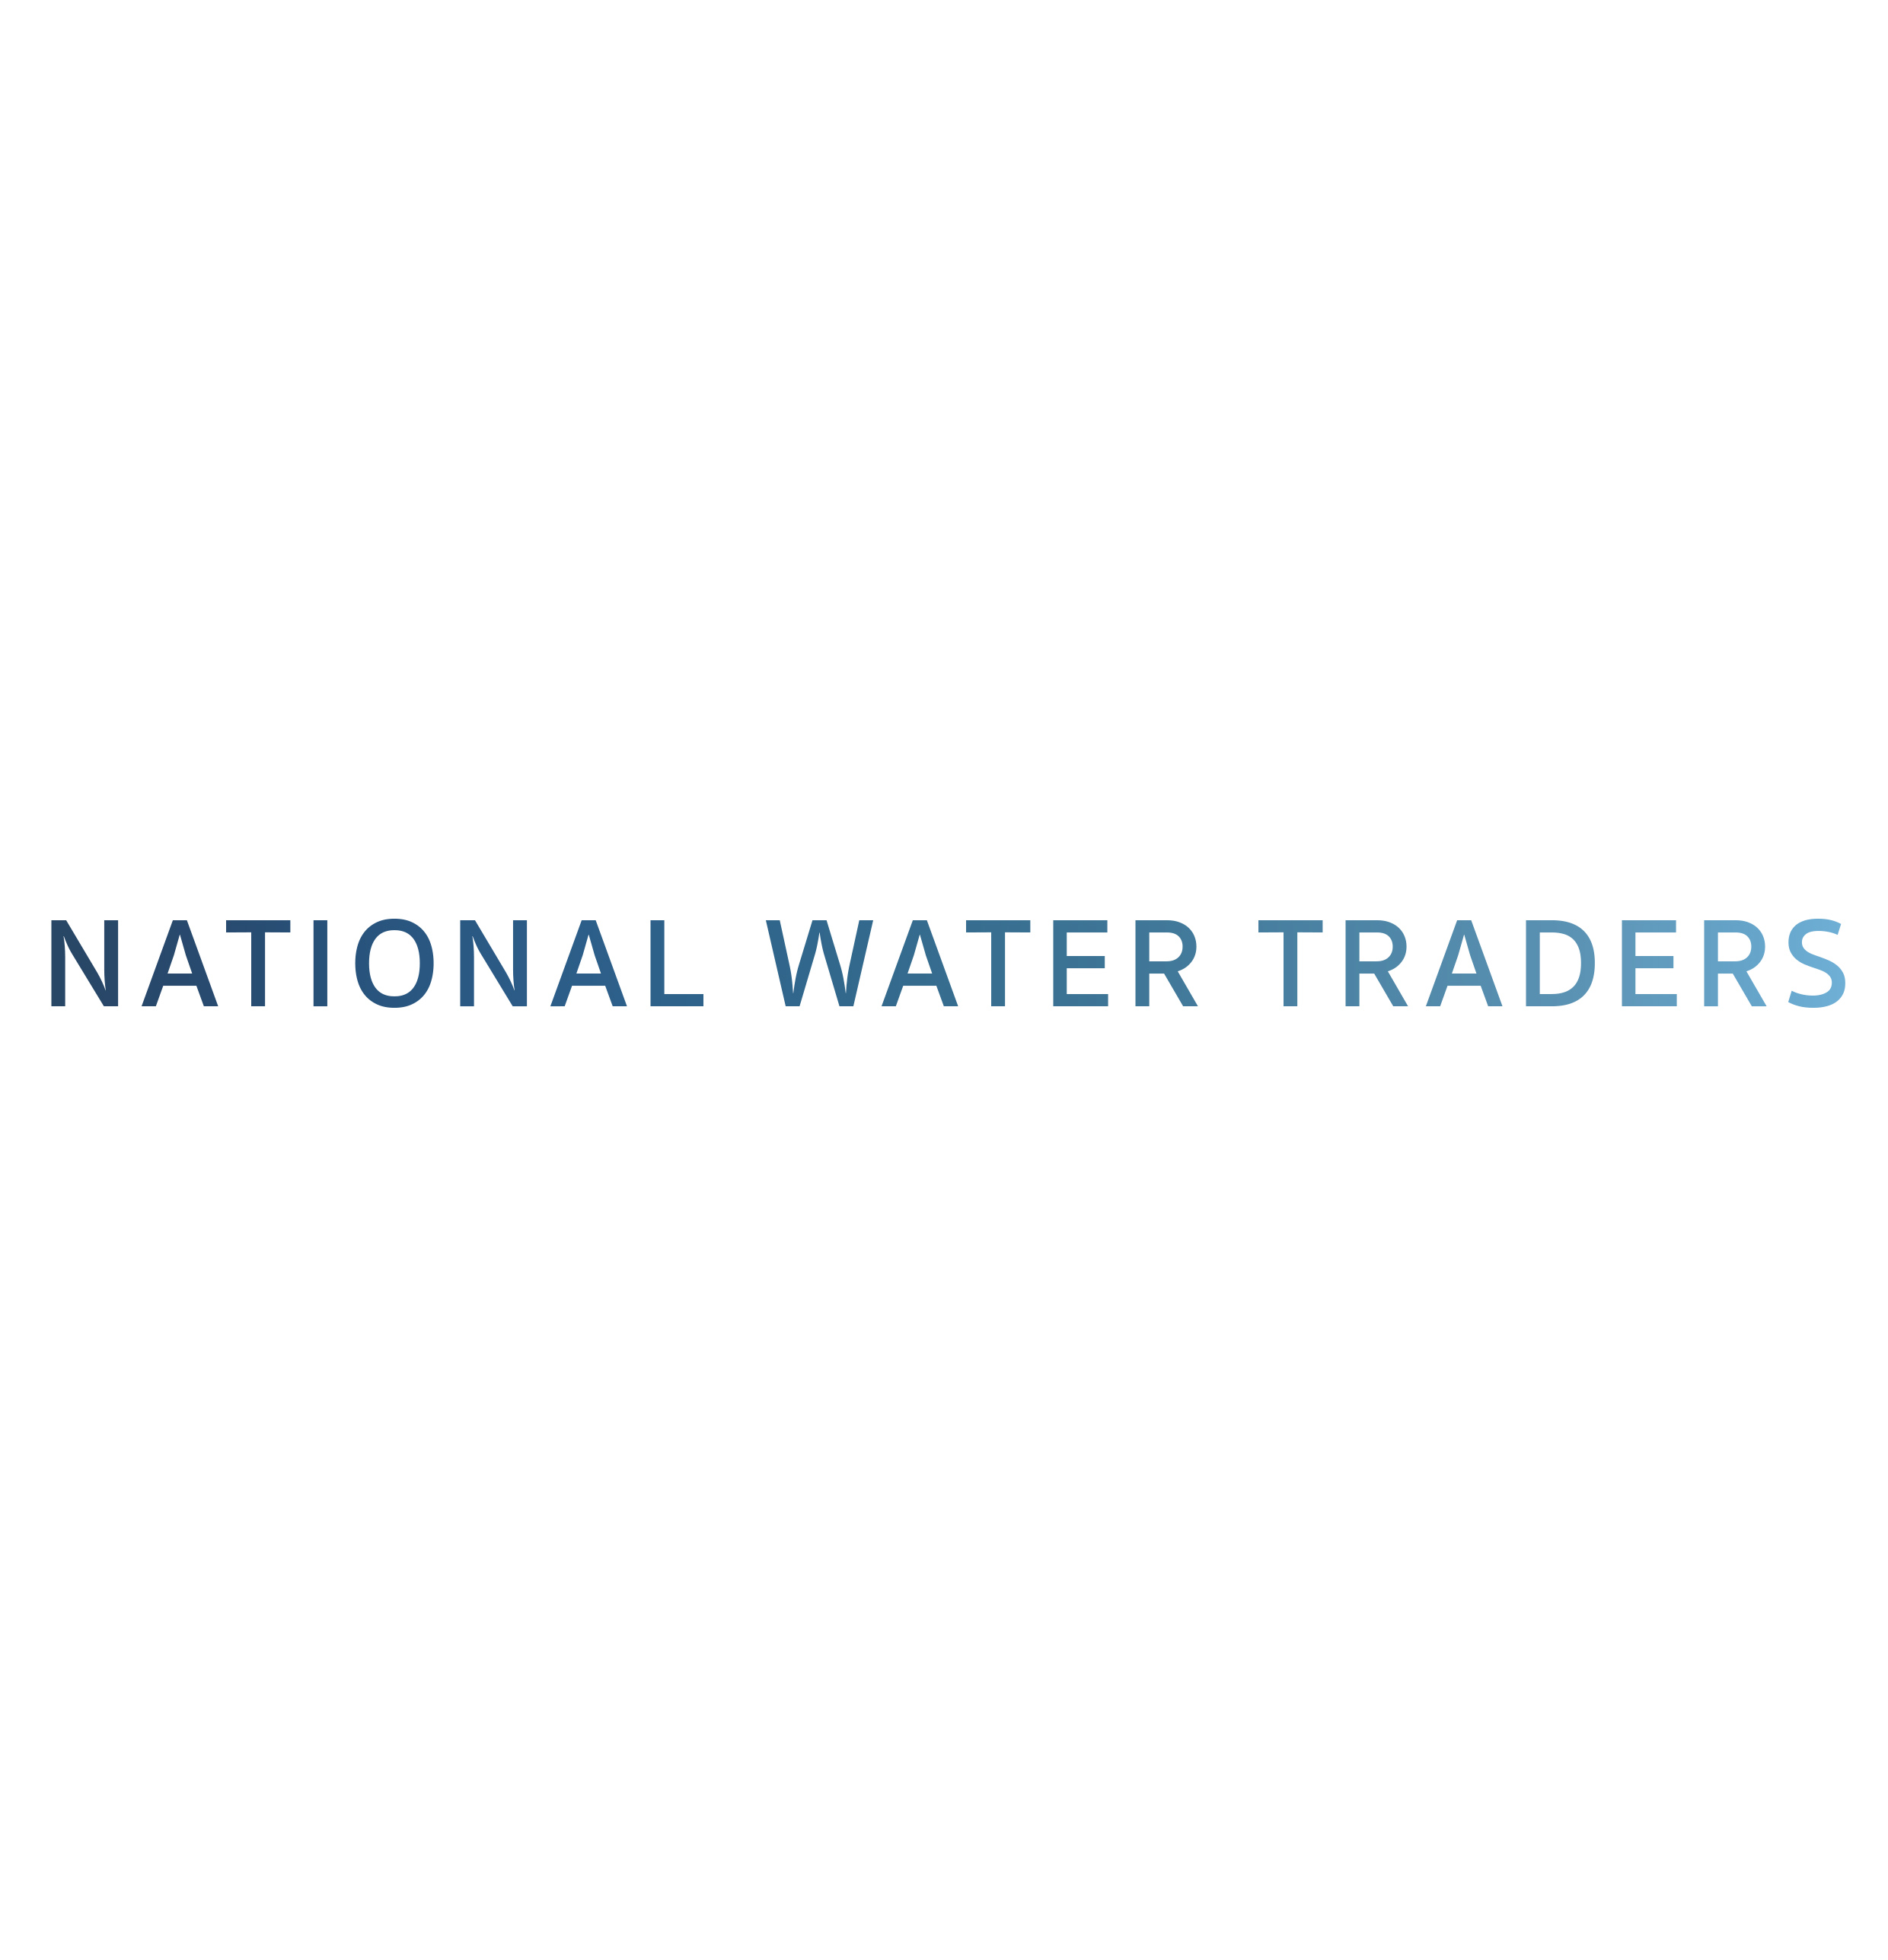 National Water Traders text logo